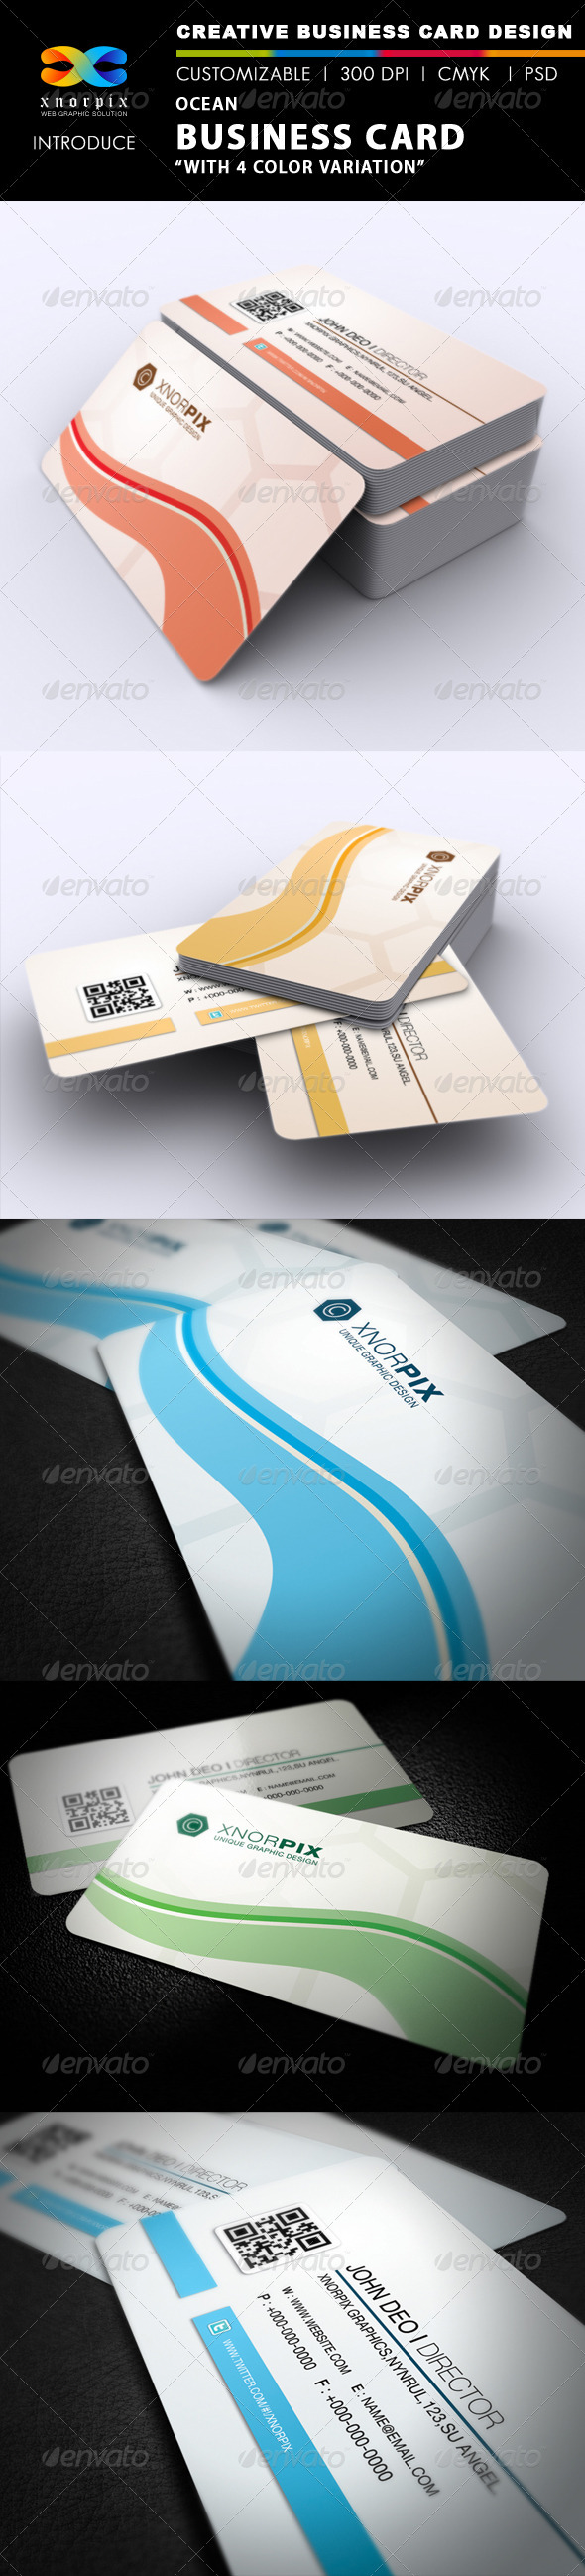 Ocean Business Card - Corporate Business Cards